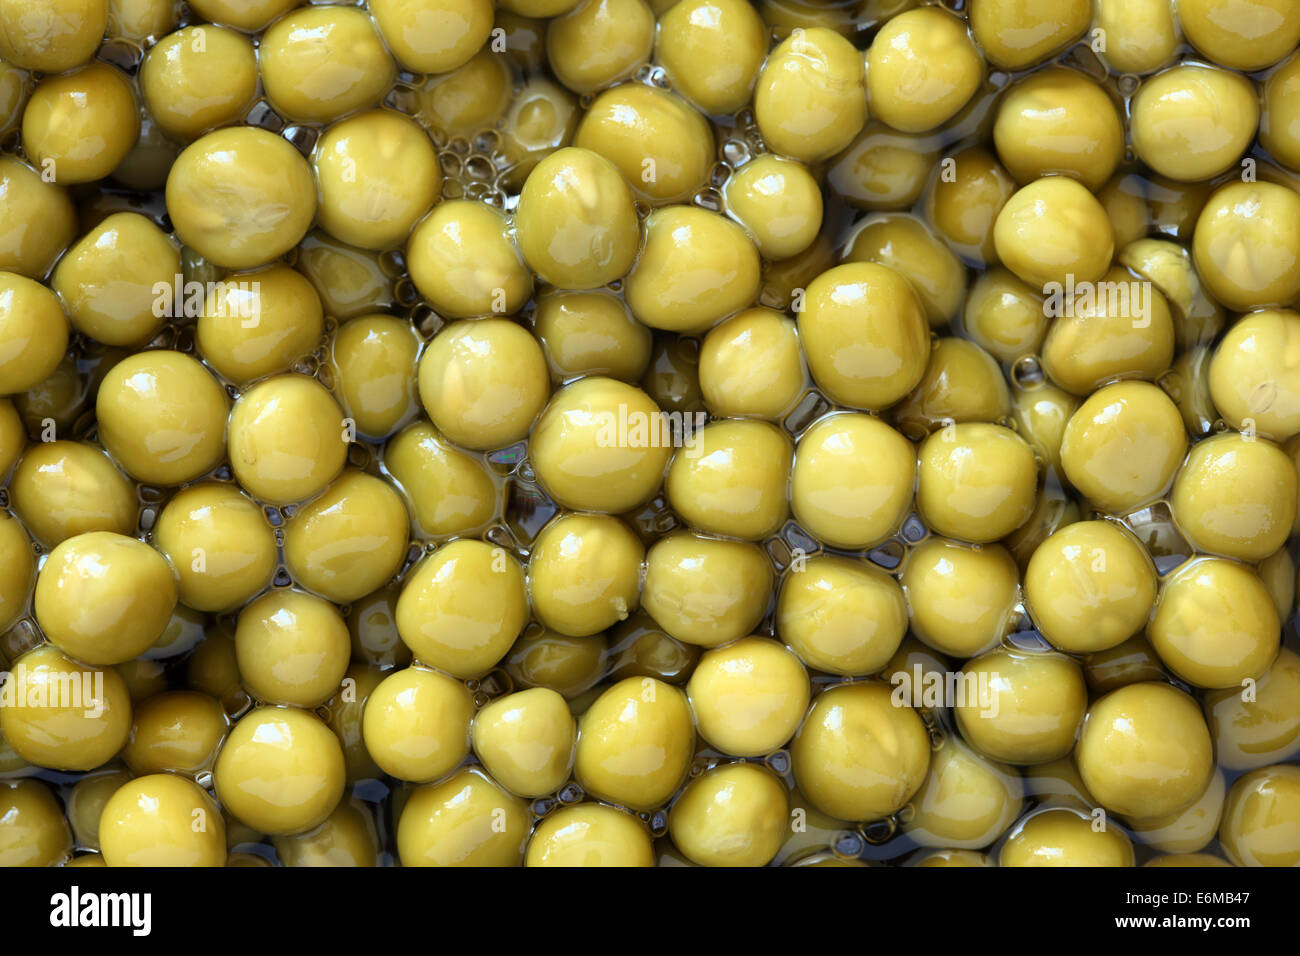 Preserved green peas background. - Stock Image